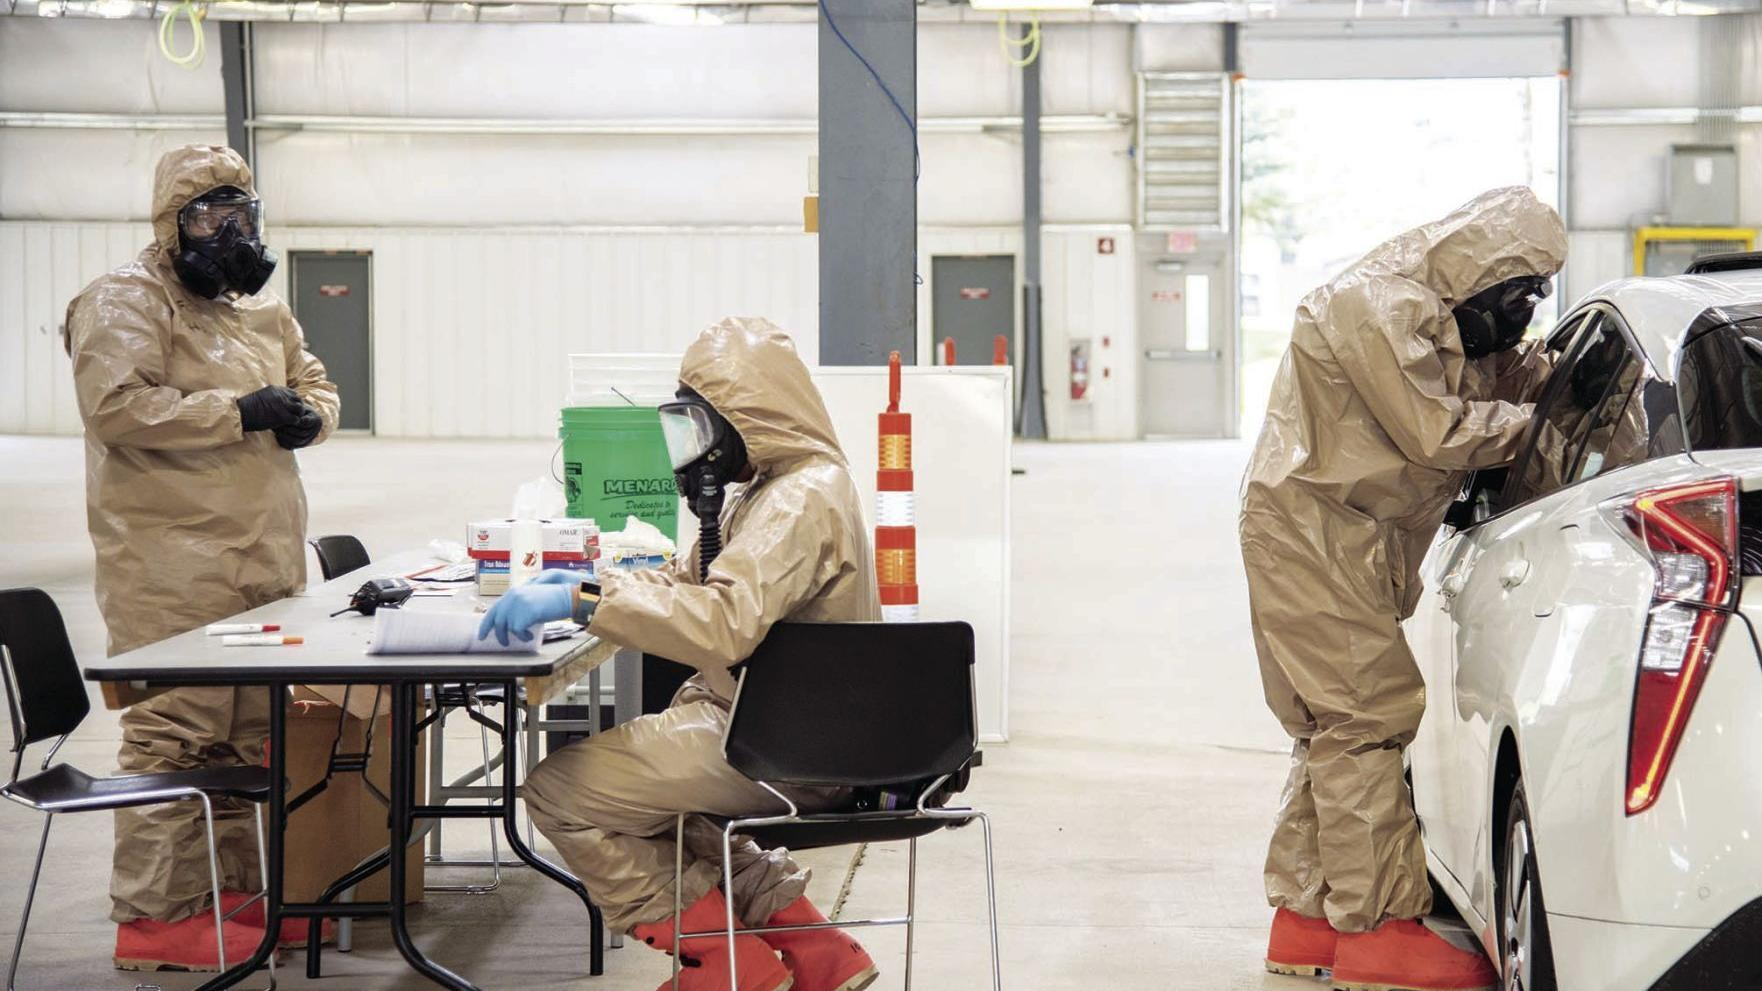 COVID testing operation to end at Alliant Energy Center